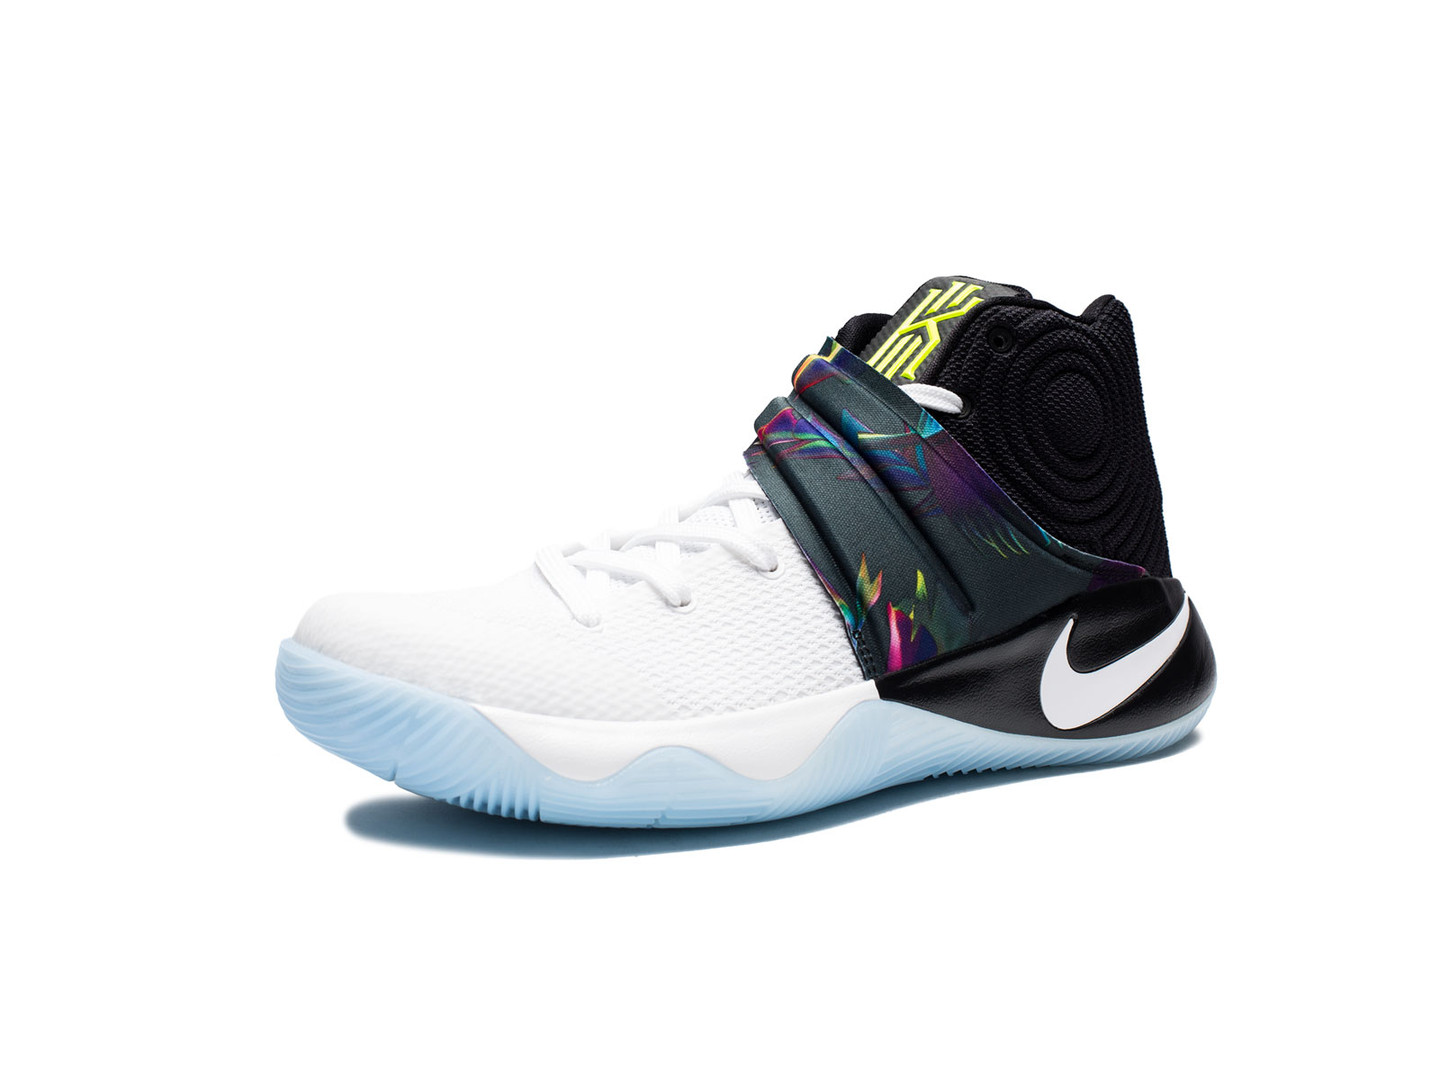 online store 54fe3 32d43 You Can Now Cop the  Parade  Colorway of the Nike Kyrie 2-1